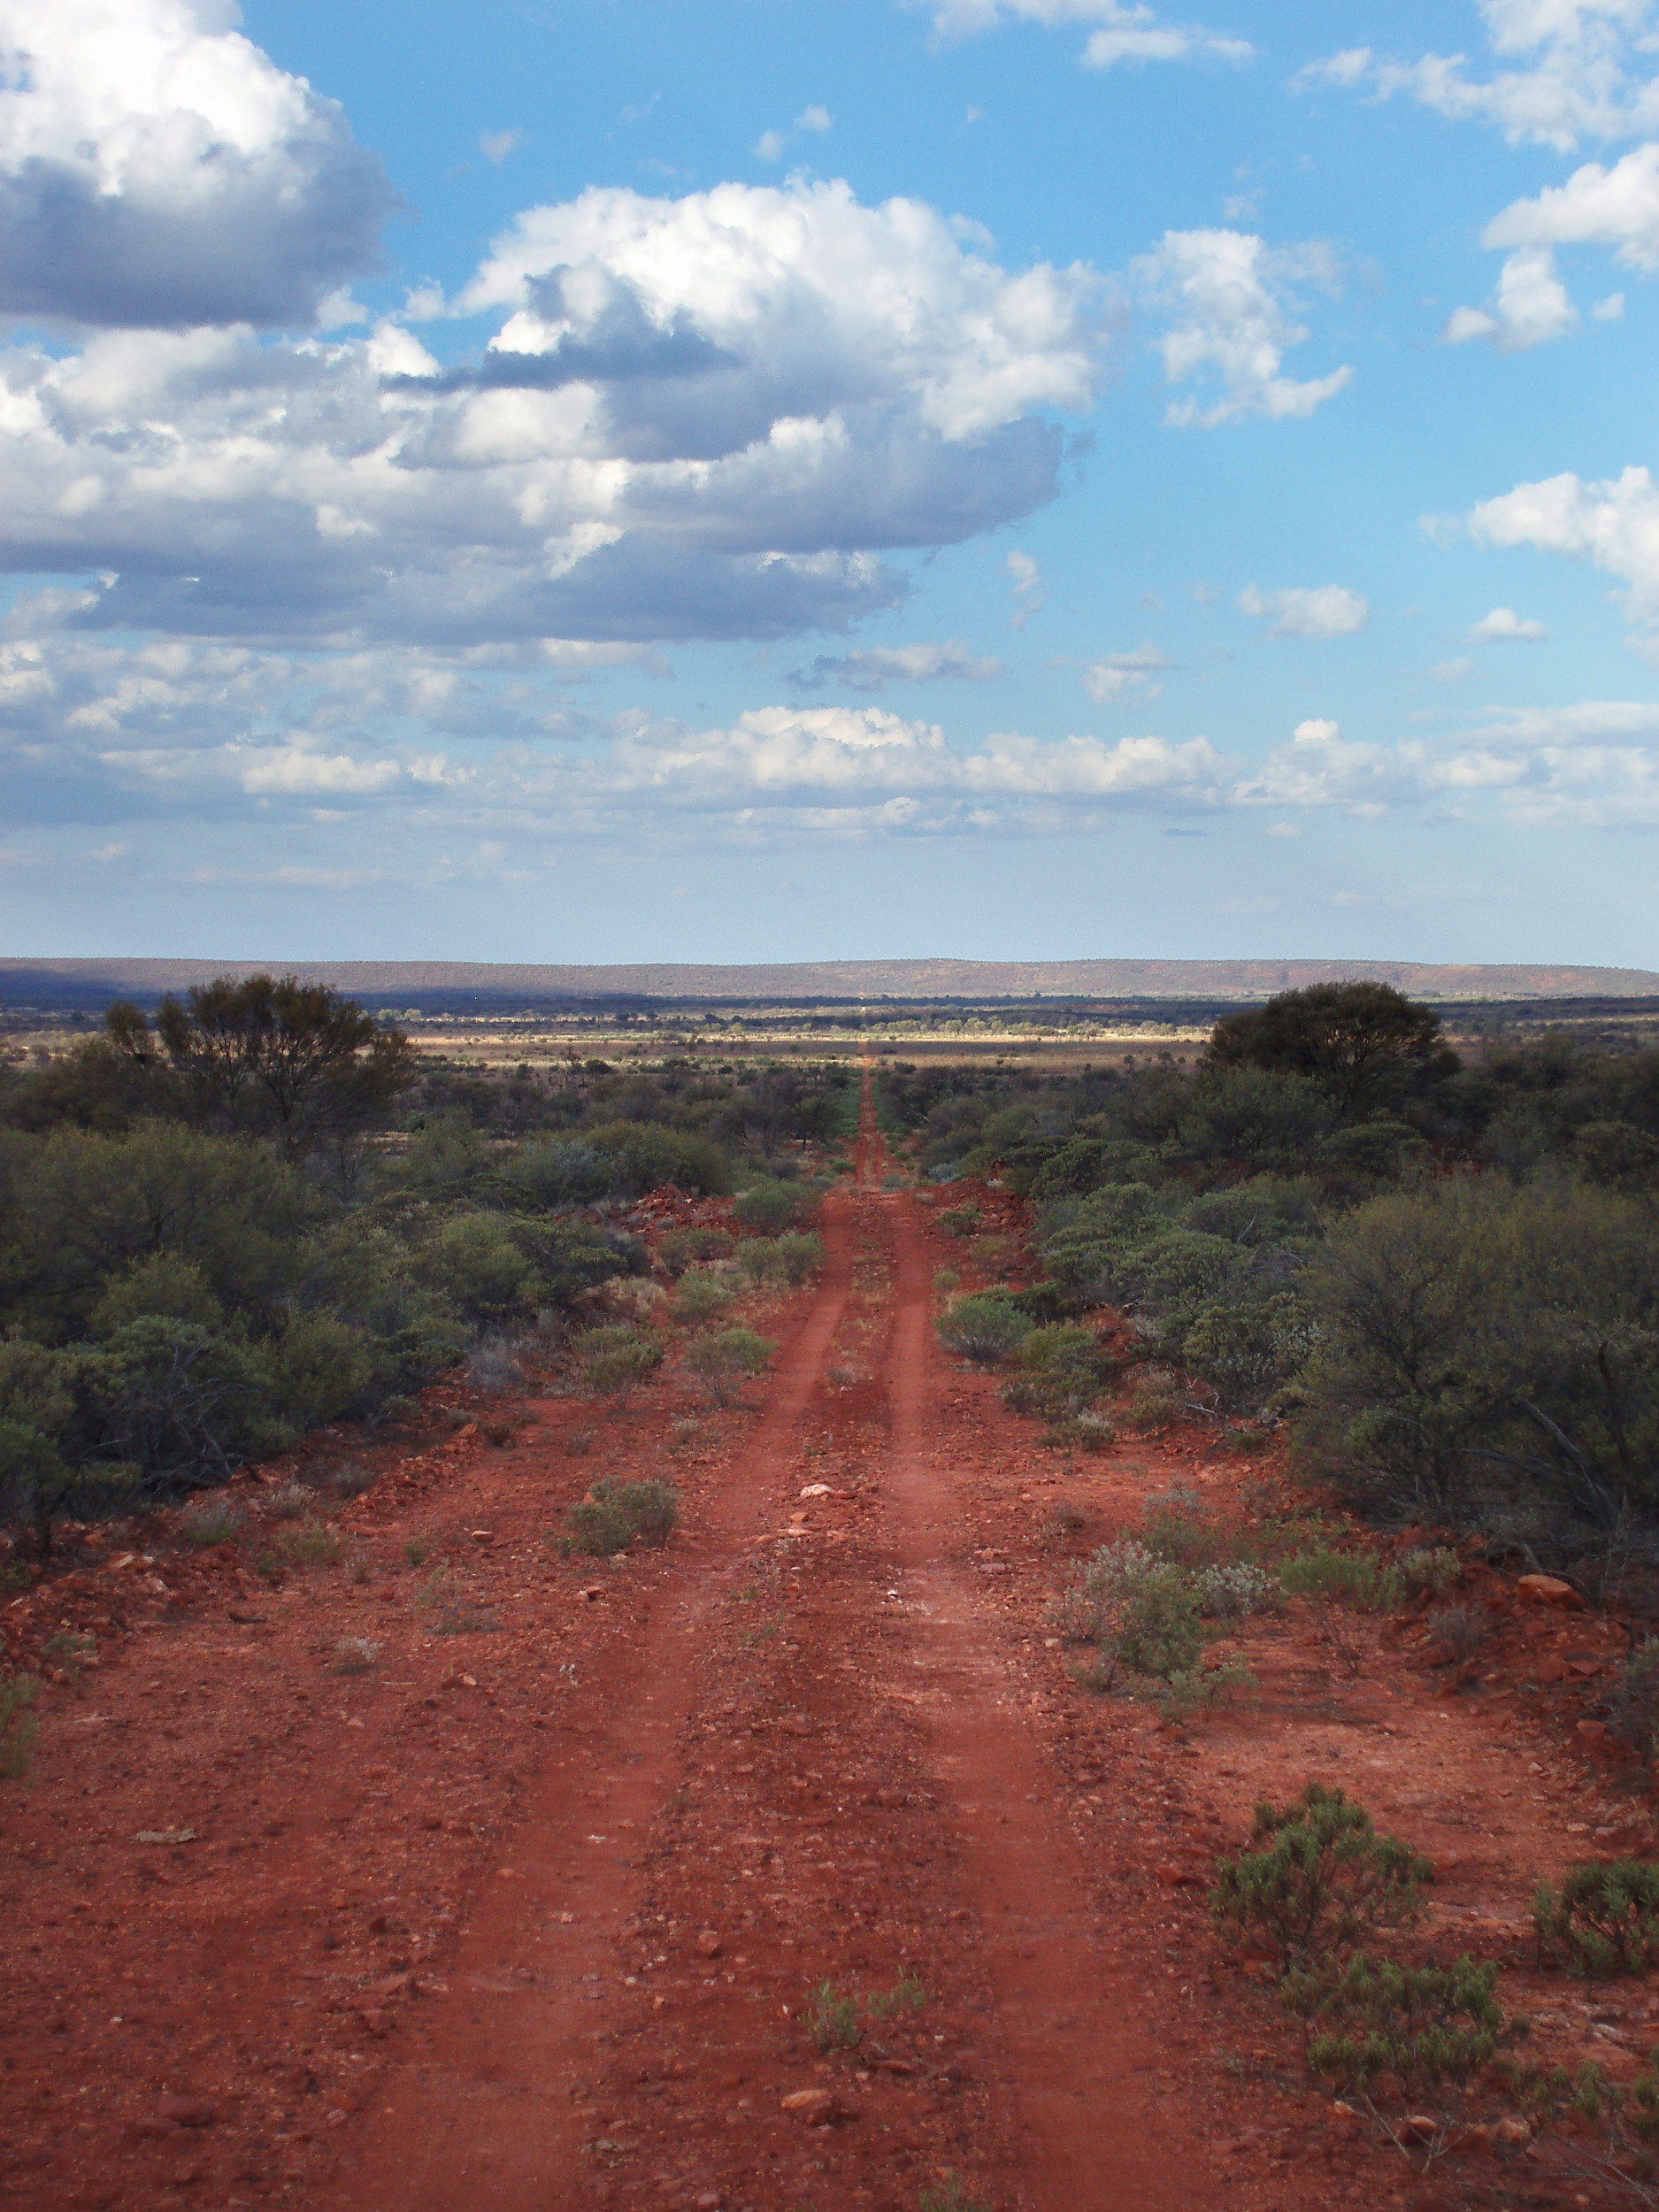 a long desert track stretches onto the horizon